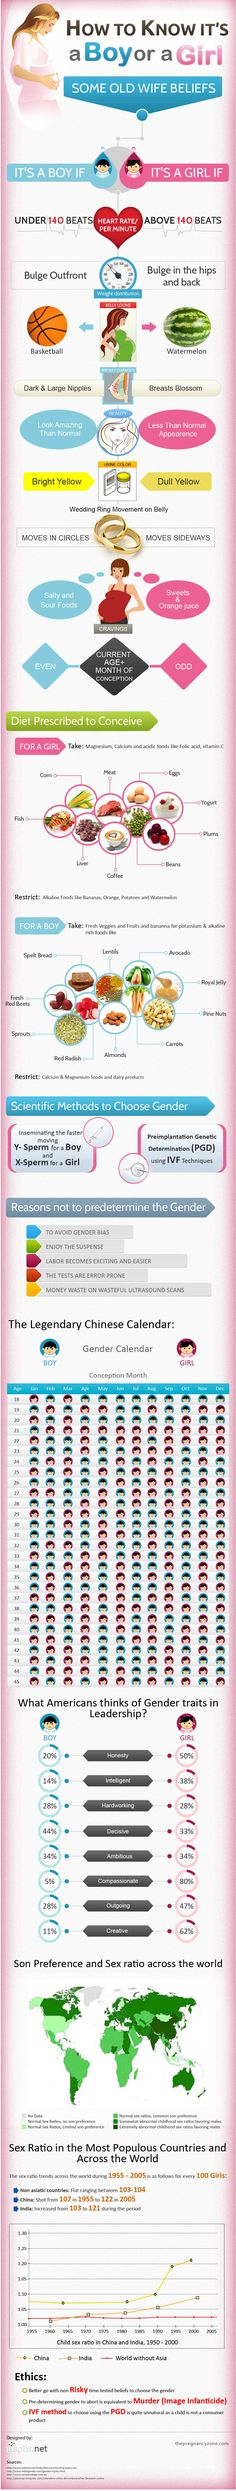 Here's a gender prediction infographic that will help you how to know if it's a boy or girl in your pregnant belly. Lots of old wives tales predictions. Bebe Love, Wives Tales, Everything Baby, Baby Time, Baby Hacks, Baby Bumps, Our Baby, Baby Baby, Having A Baby